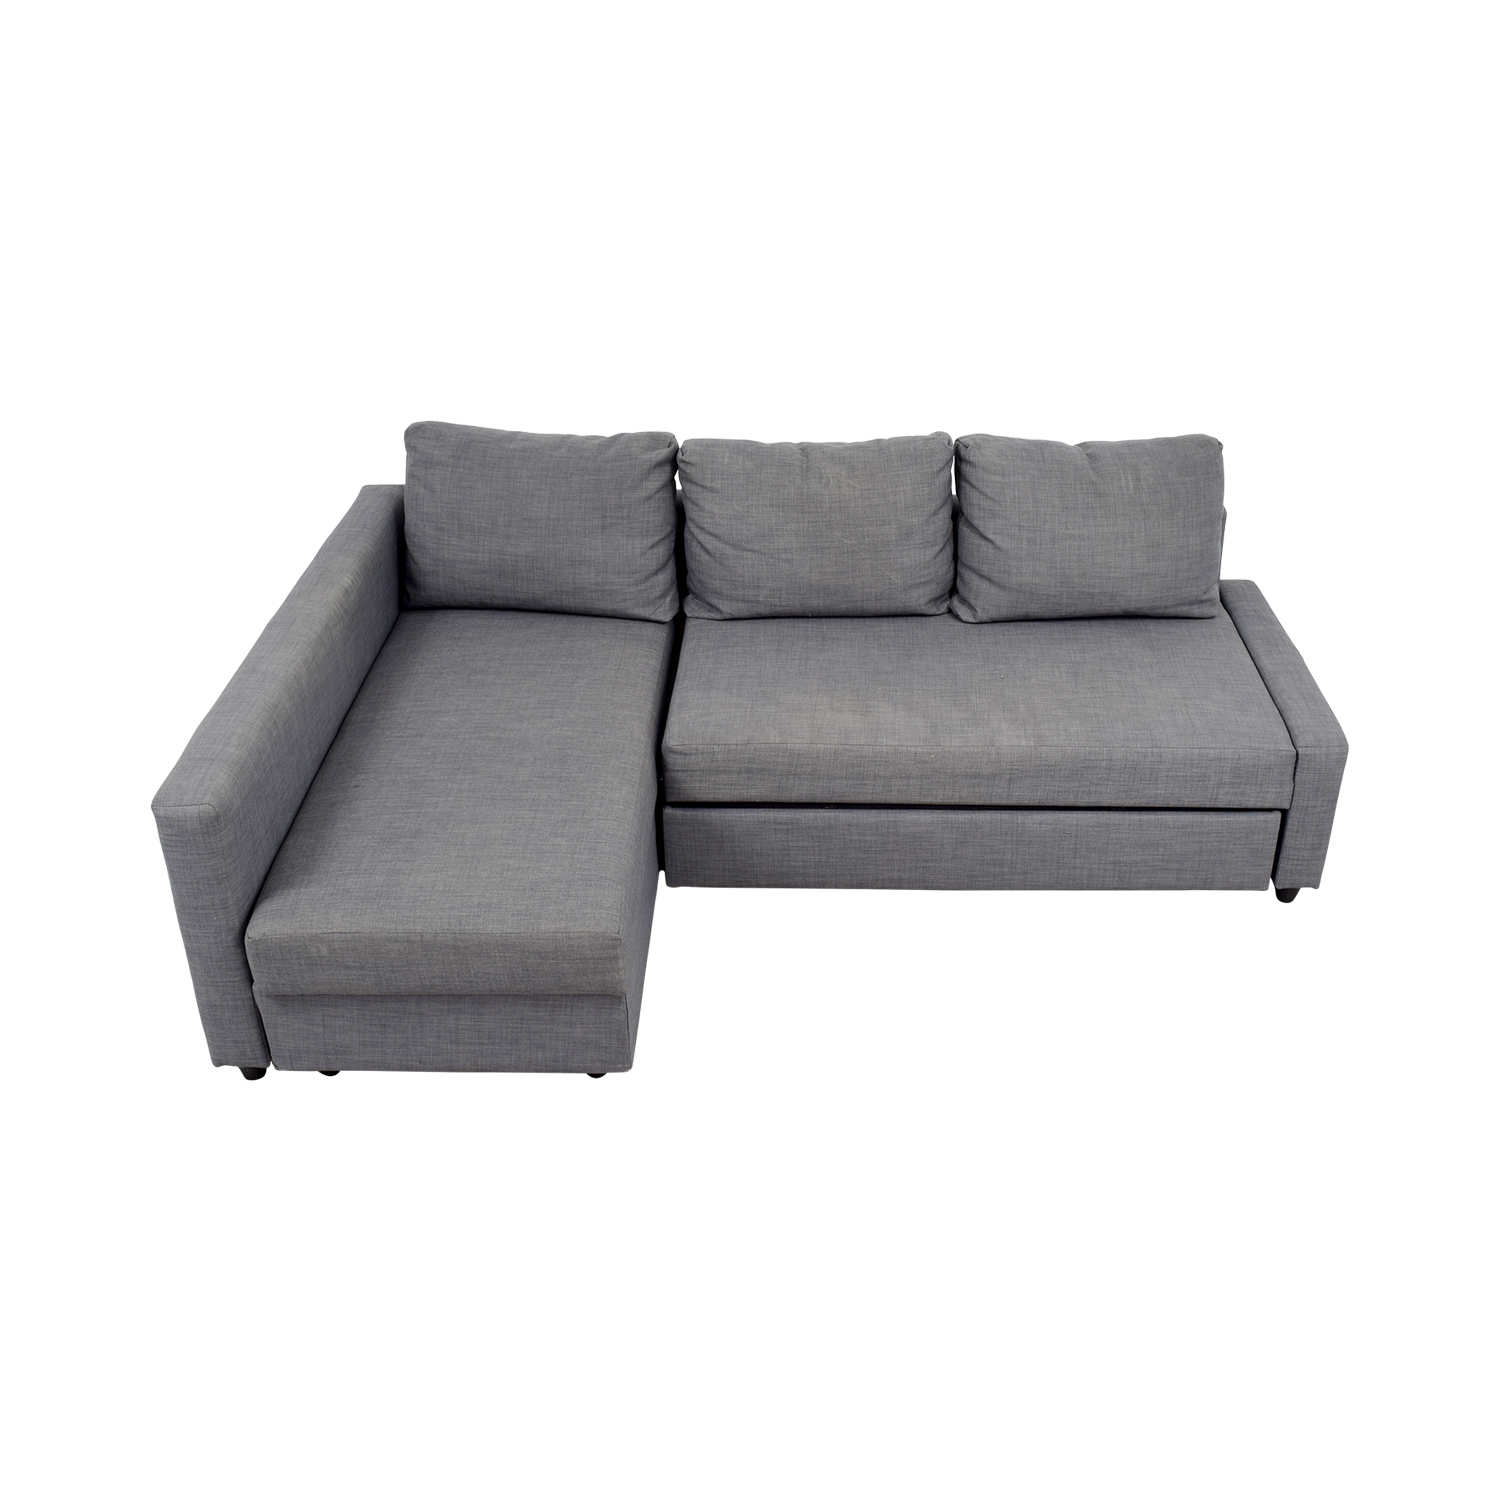 IKEA IKEA Friheten Sofa on sale